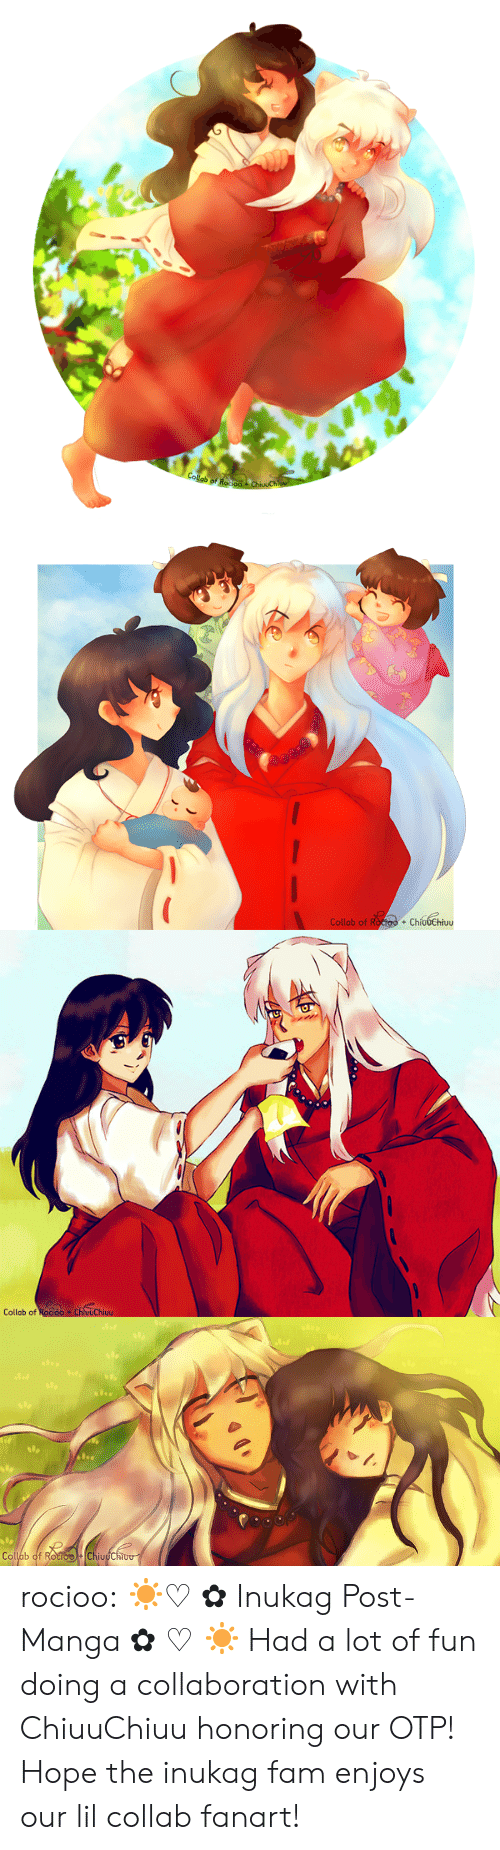 Enjoys: Collab of Roo  ChivuChi   Collab of Roctoo + ChíudChiuu  +   Collab of Rocioo ChluuChiuu   Op  Collab of RocioChiuuChiou rocioo:  ☀♡ ✿ Inukag Post-Manga ✿ ♡ ☀ Had a lot of fun doing a collaboration with ChiuuChiuu honoring our OTP! Hope the inukag fam enjoys our lil collab fanart!